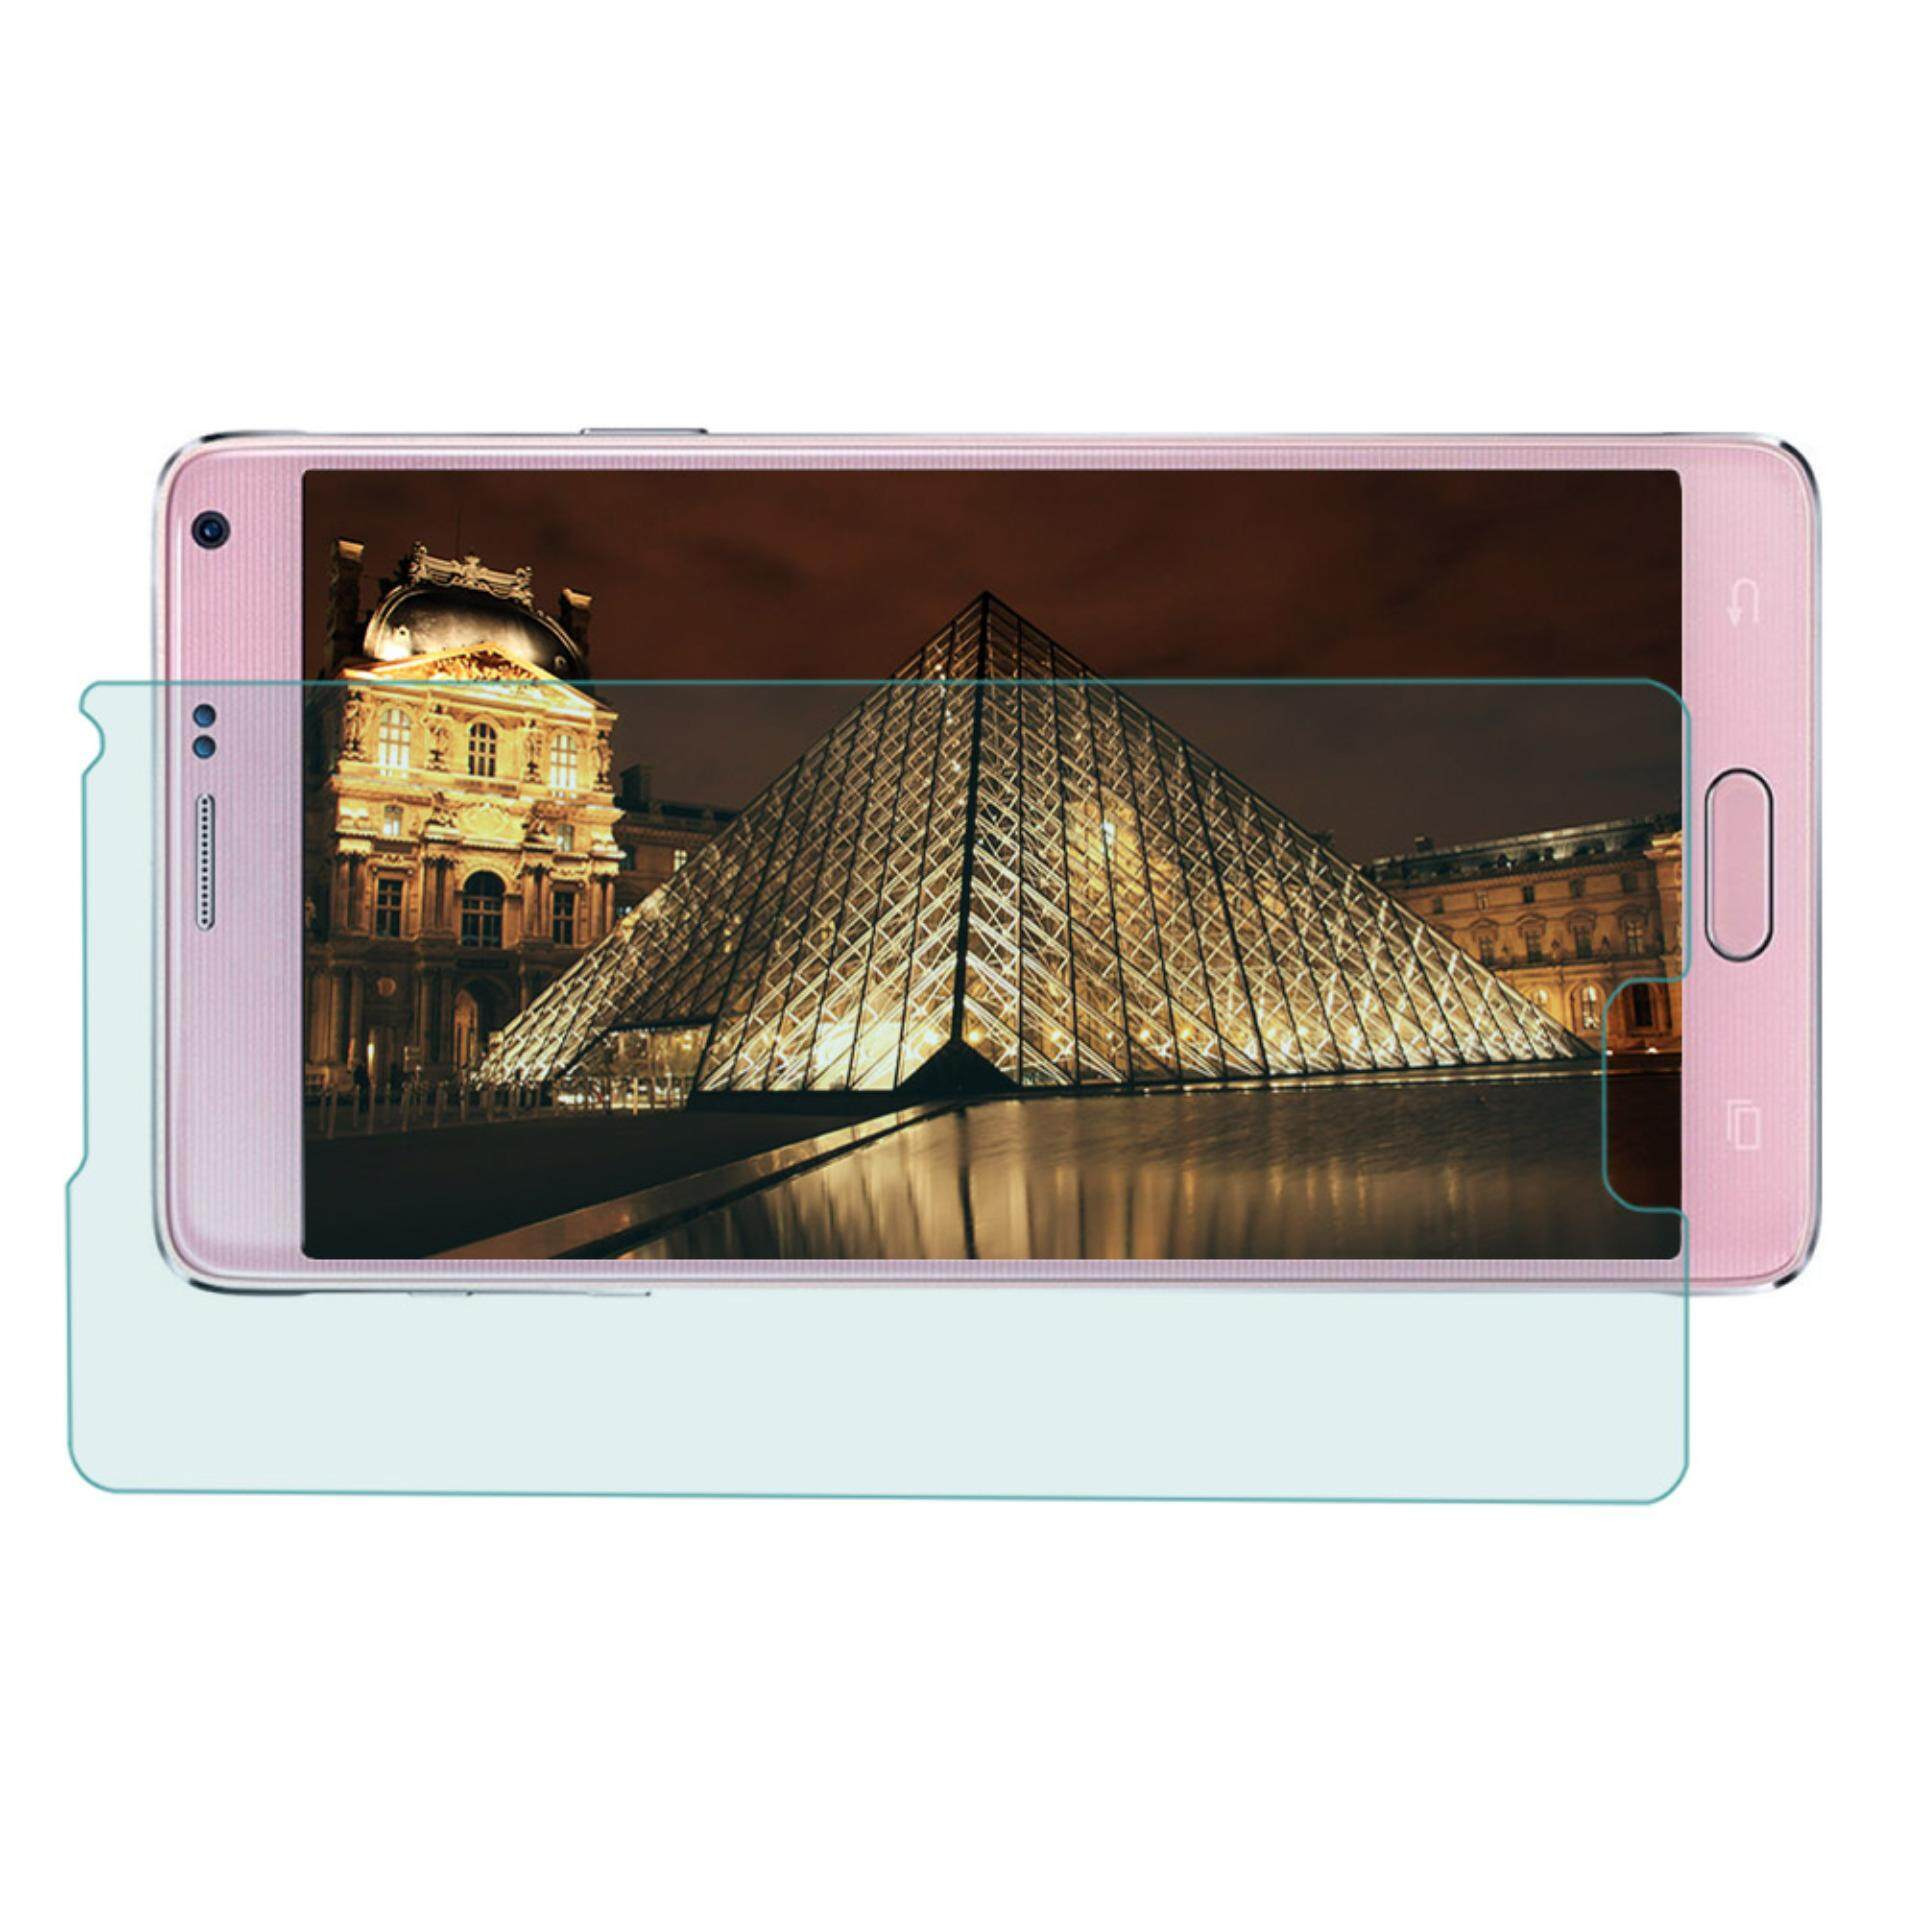 For Samsung Galaxy Note 4 Matte Frosted Premium 9H Tempered GlassScreen Protector Film .